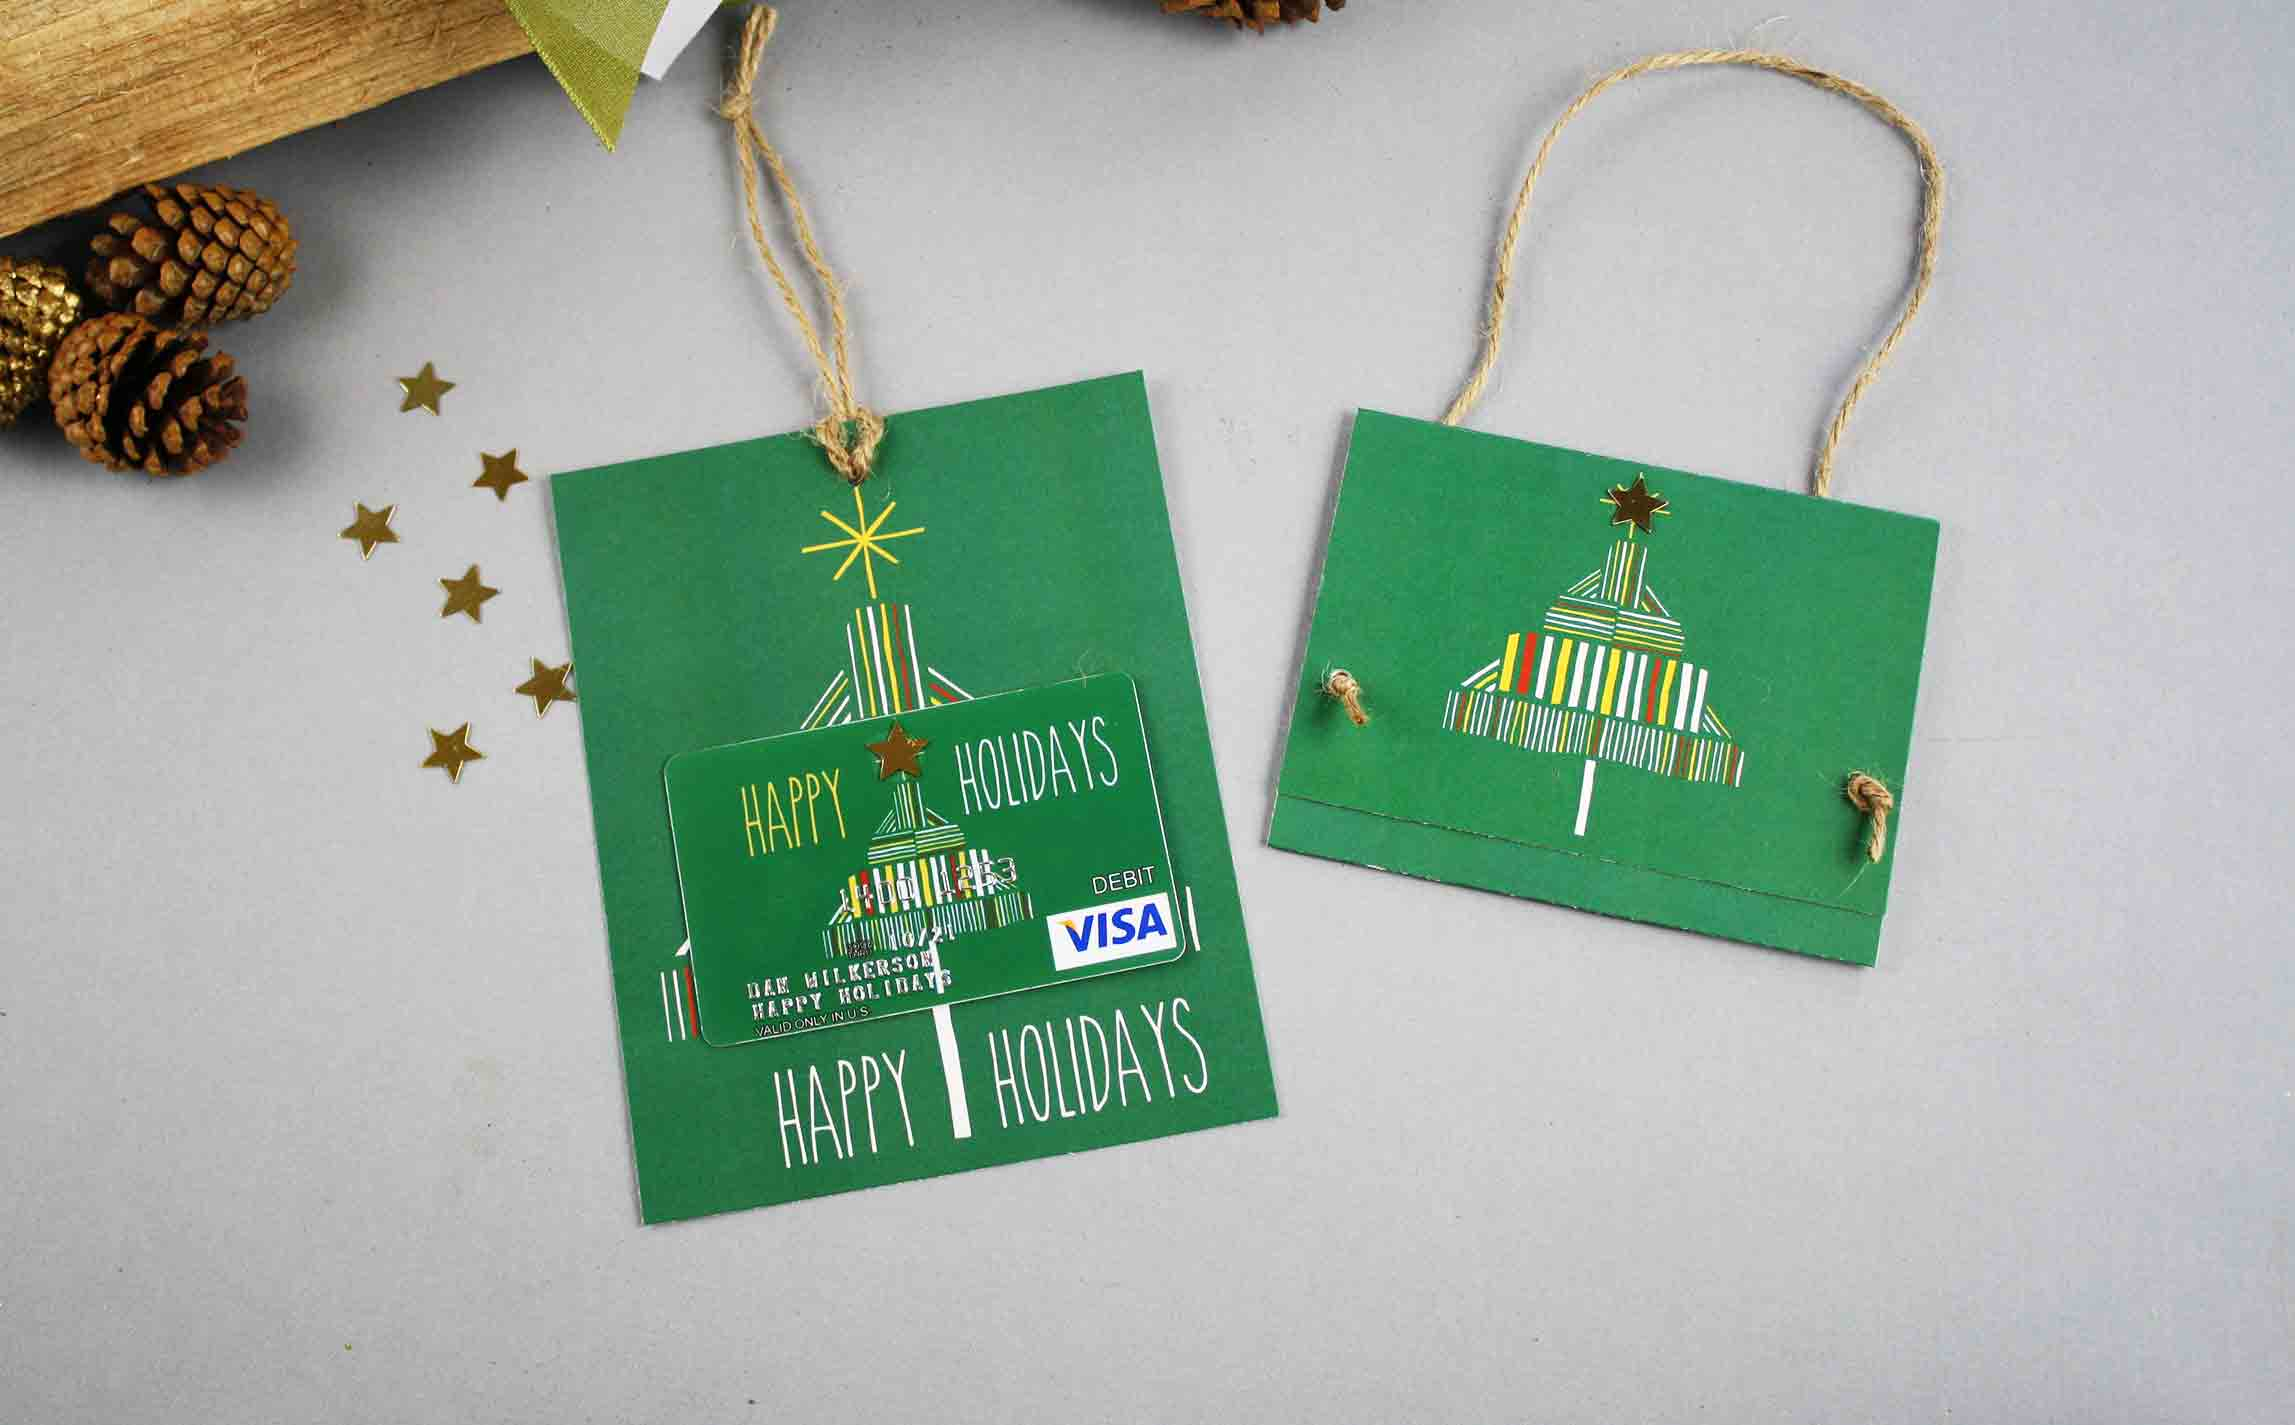 Free Gift Card Printable: Happy Holidays | Gcg - Make A Holiday Card For Free Printable